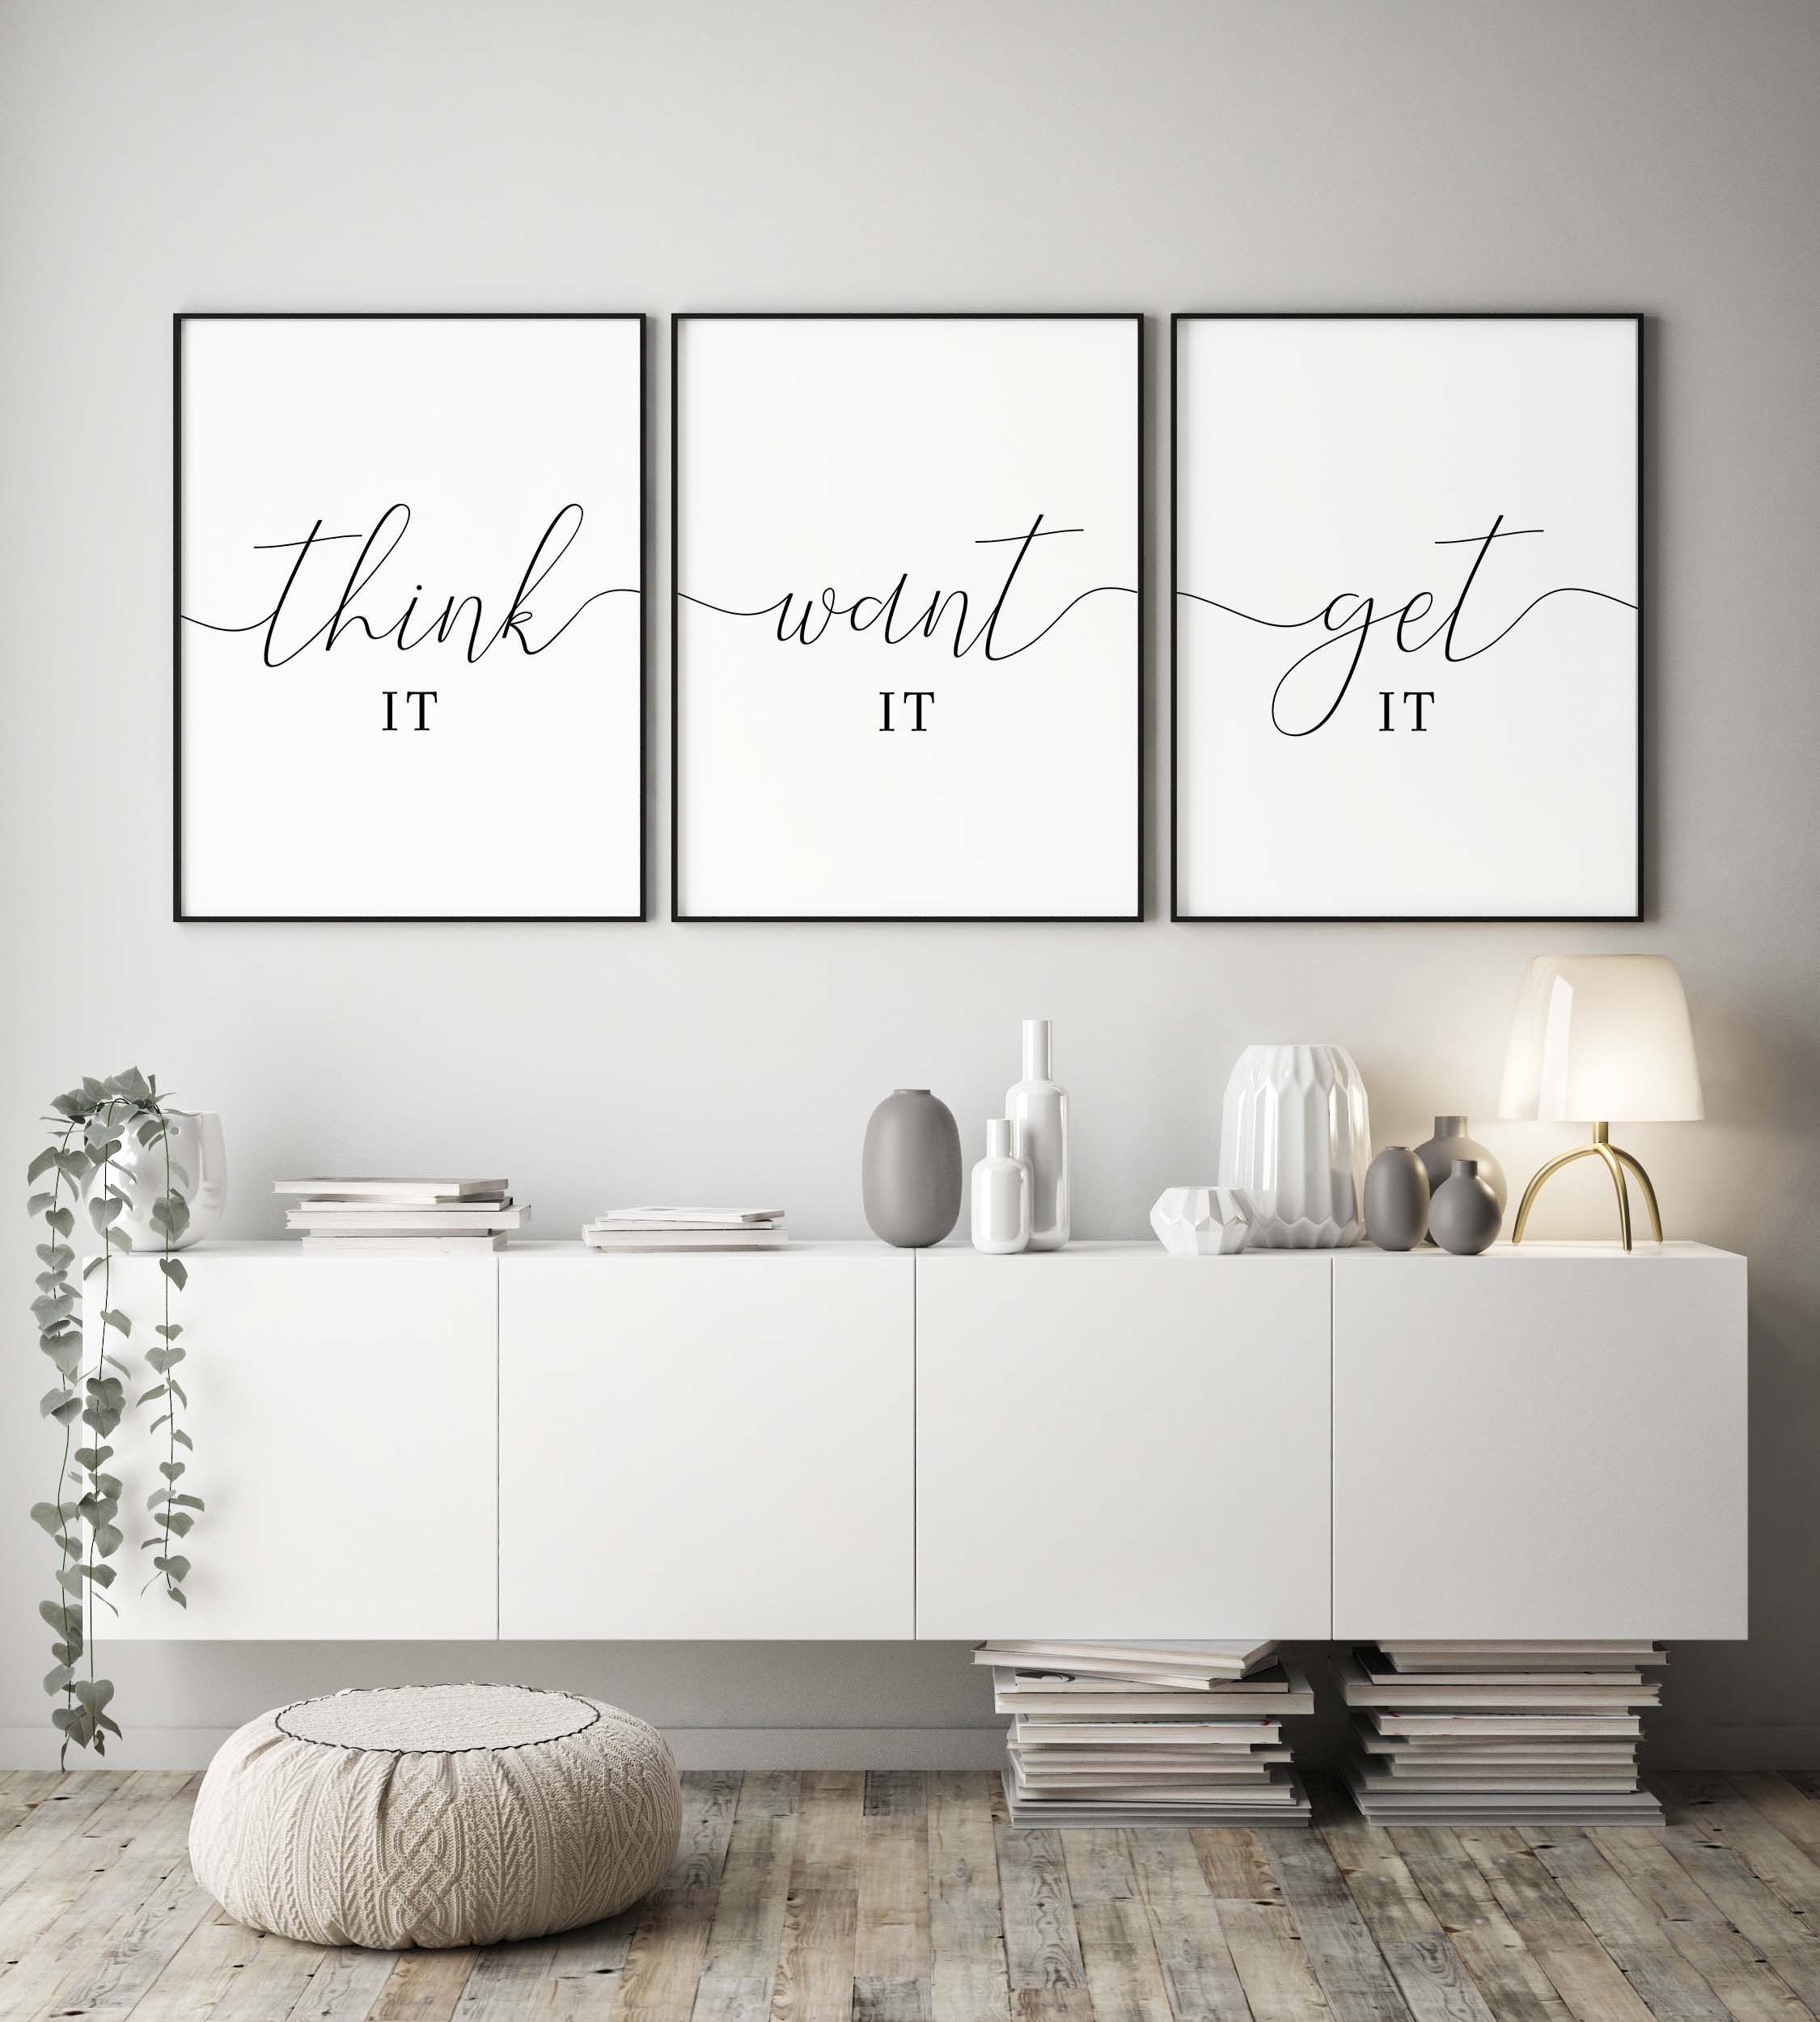 Motivational Printthink It Want It Get Itoffice Wall Etsy Living Room Quotes Wall Art Living Room Room Wall Decor